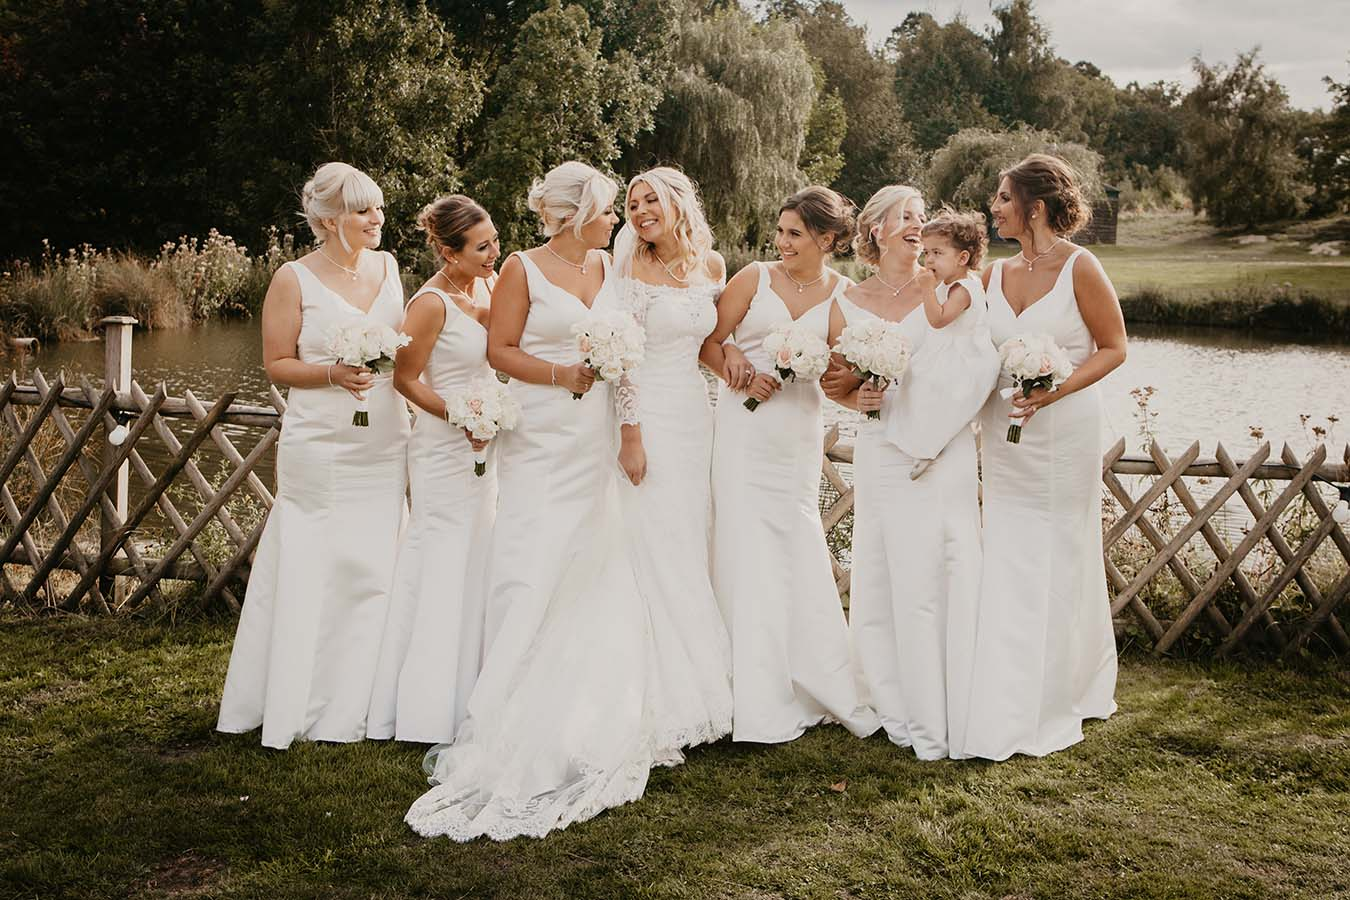 Stunning Marquee Wedding With Mori Lee Gown, Bridesmaids In White And A Helicopter Send Off